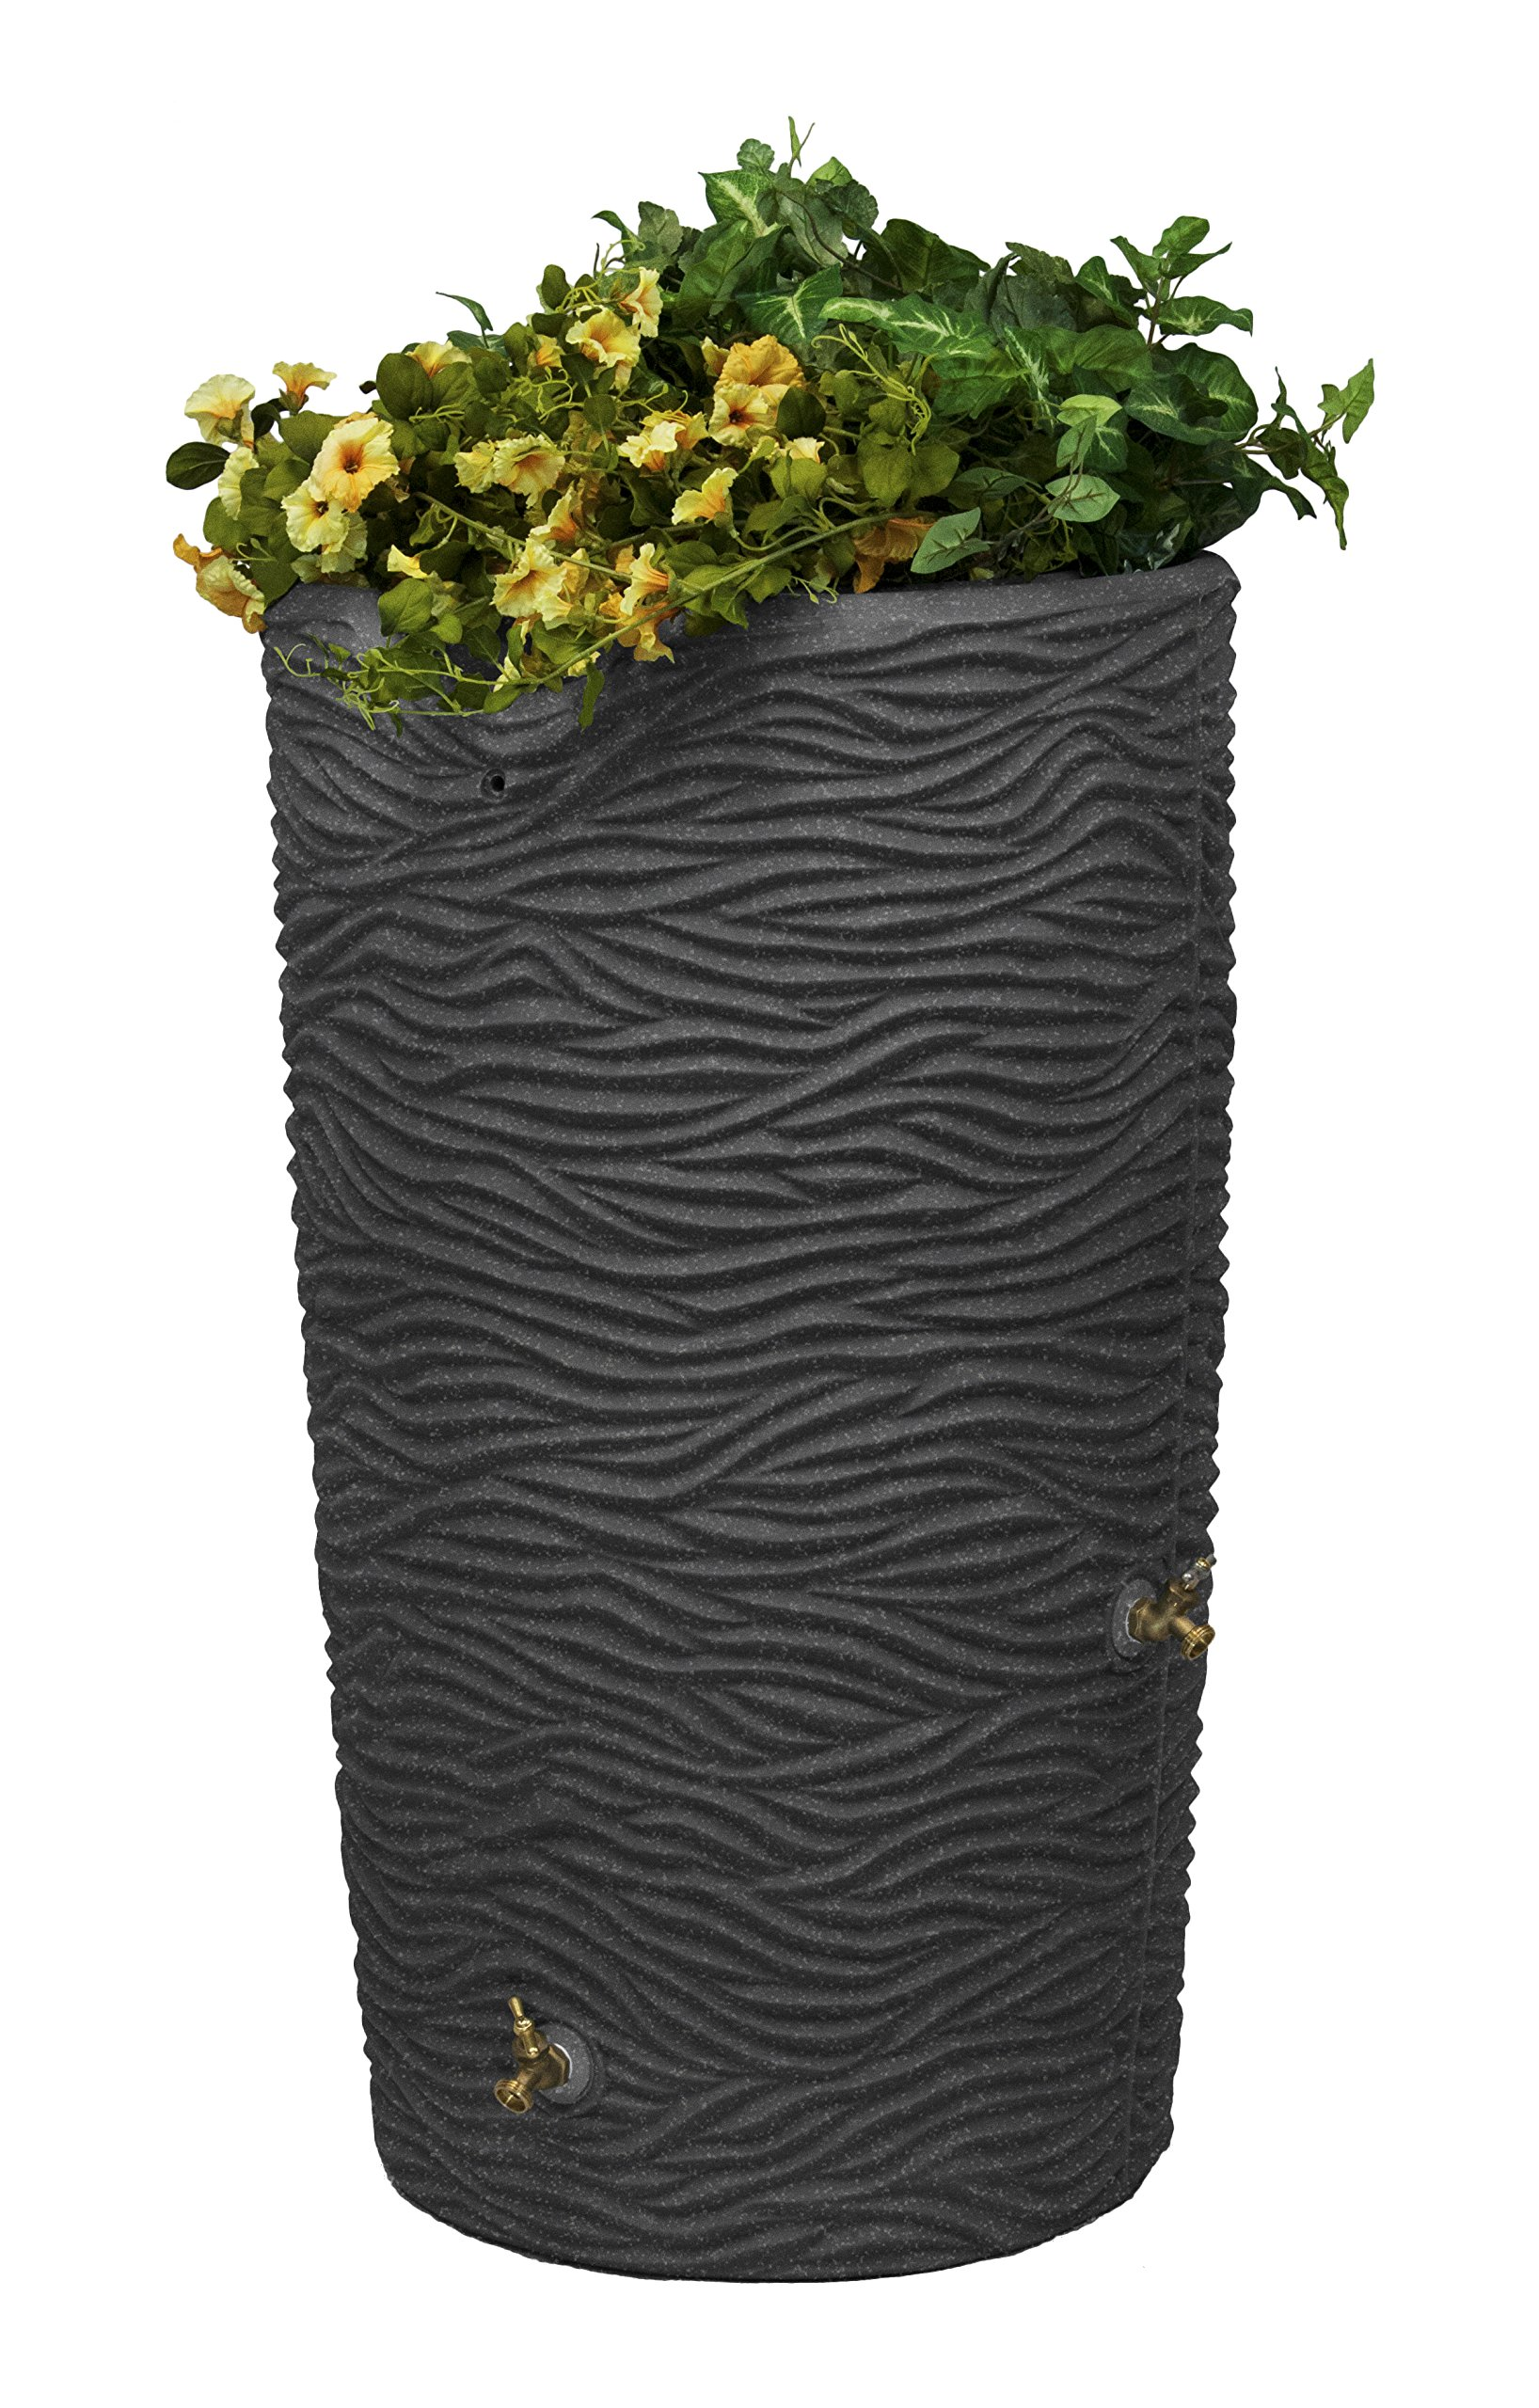 Good Ideas IMP-L65-DAR Impressions Palm Rain Saver, 65-Gallon, Dark Granite